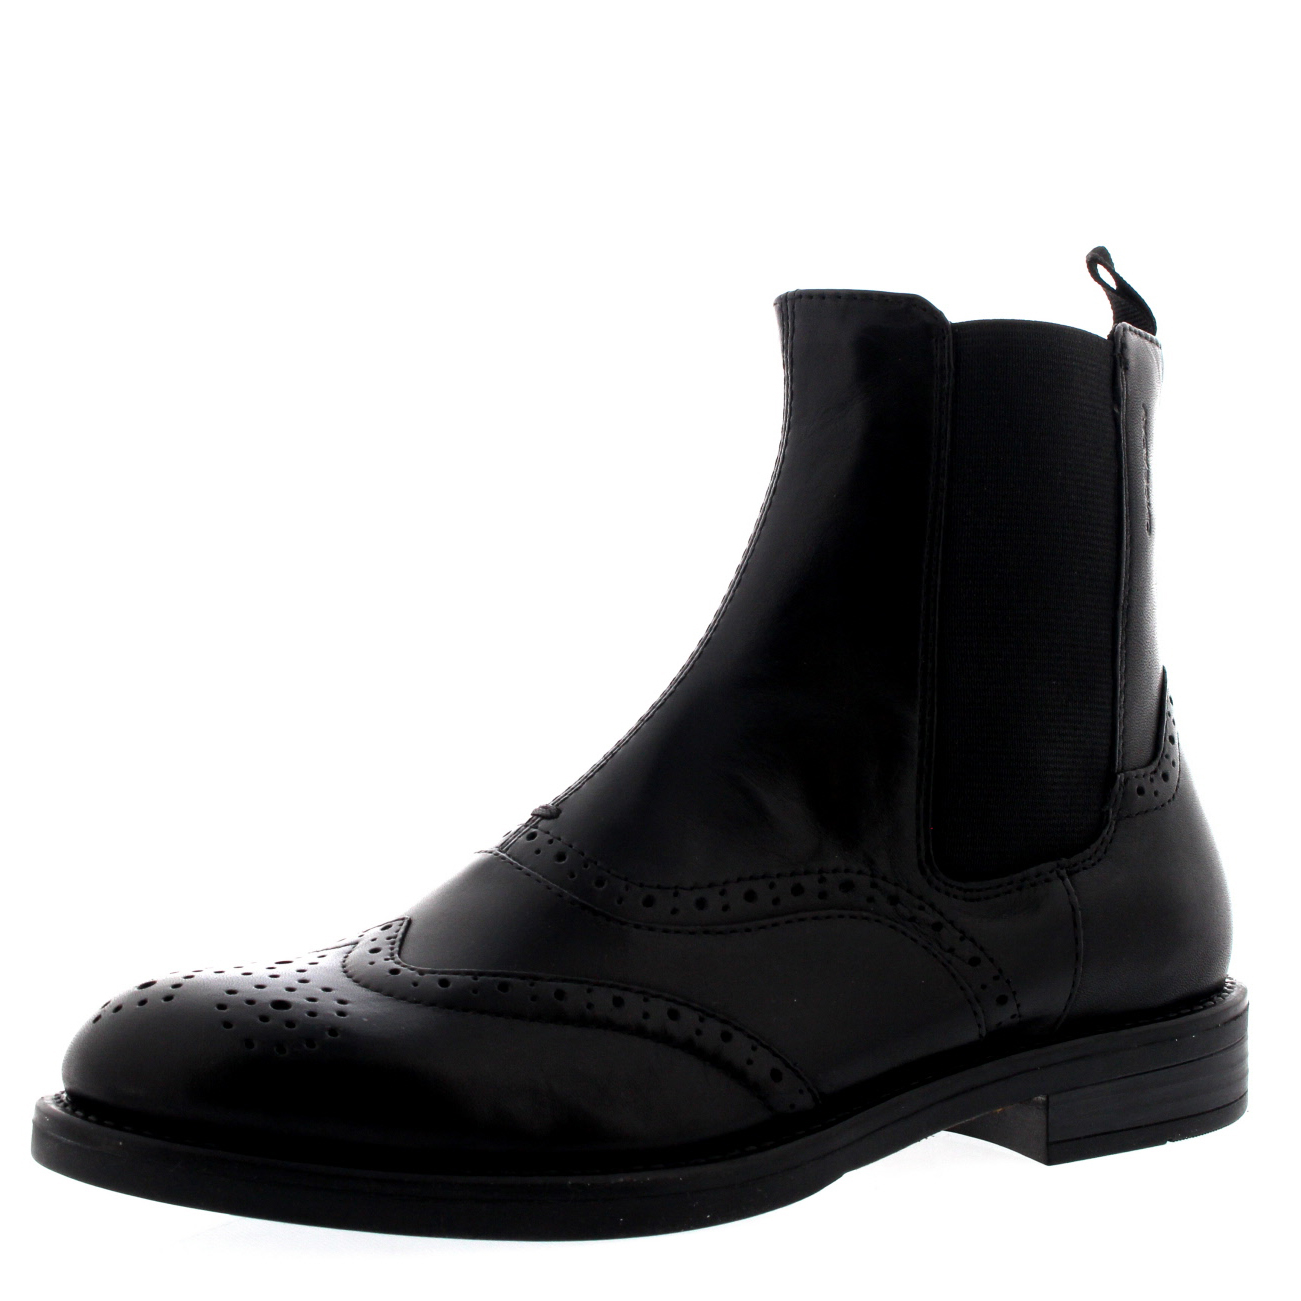 0ca955c5b23a3 Ladies Vagabond Amina Office Leather Brogue Smart Ankle Chelsea Boots All  Sizes